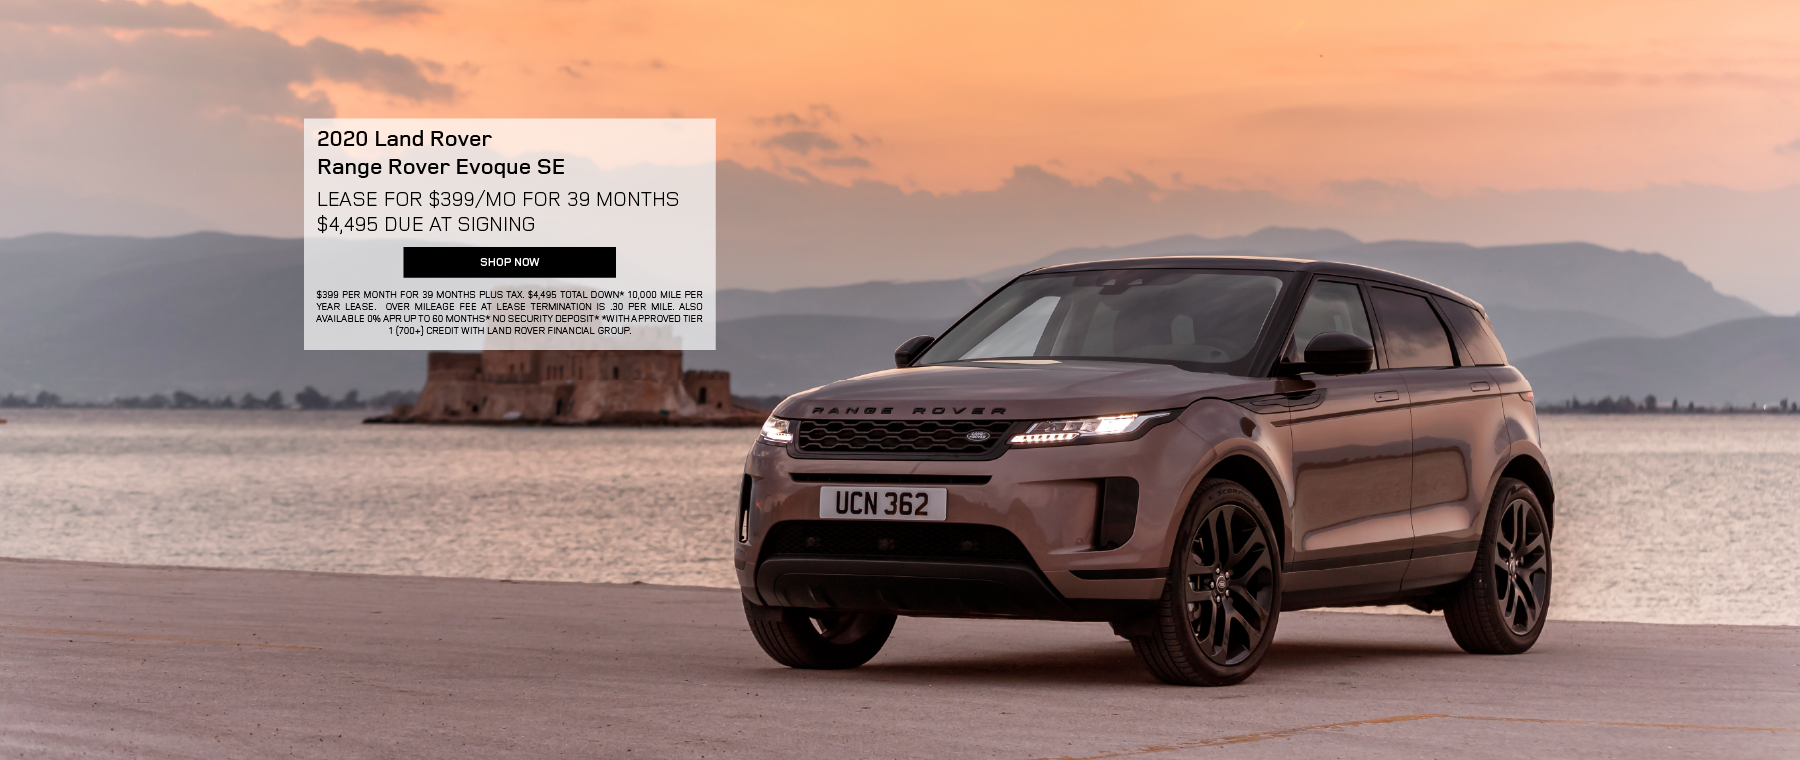 Range Rover Evoque_1 Jan 21